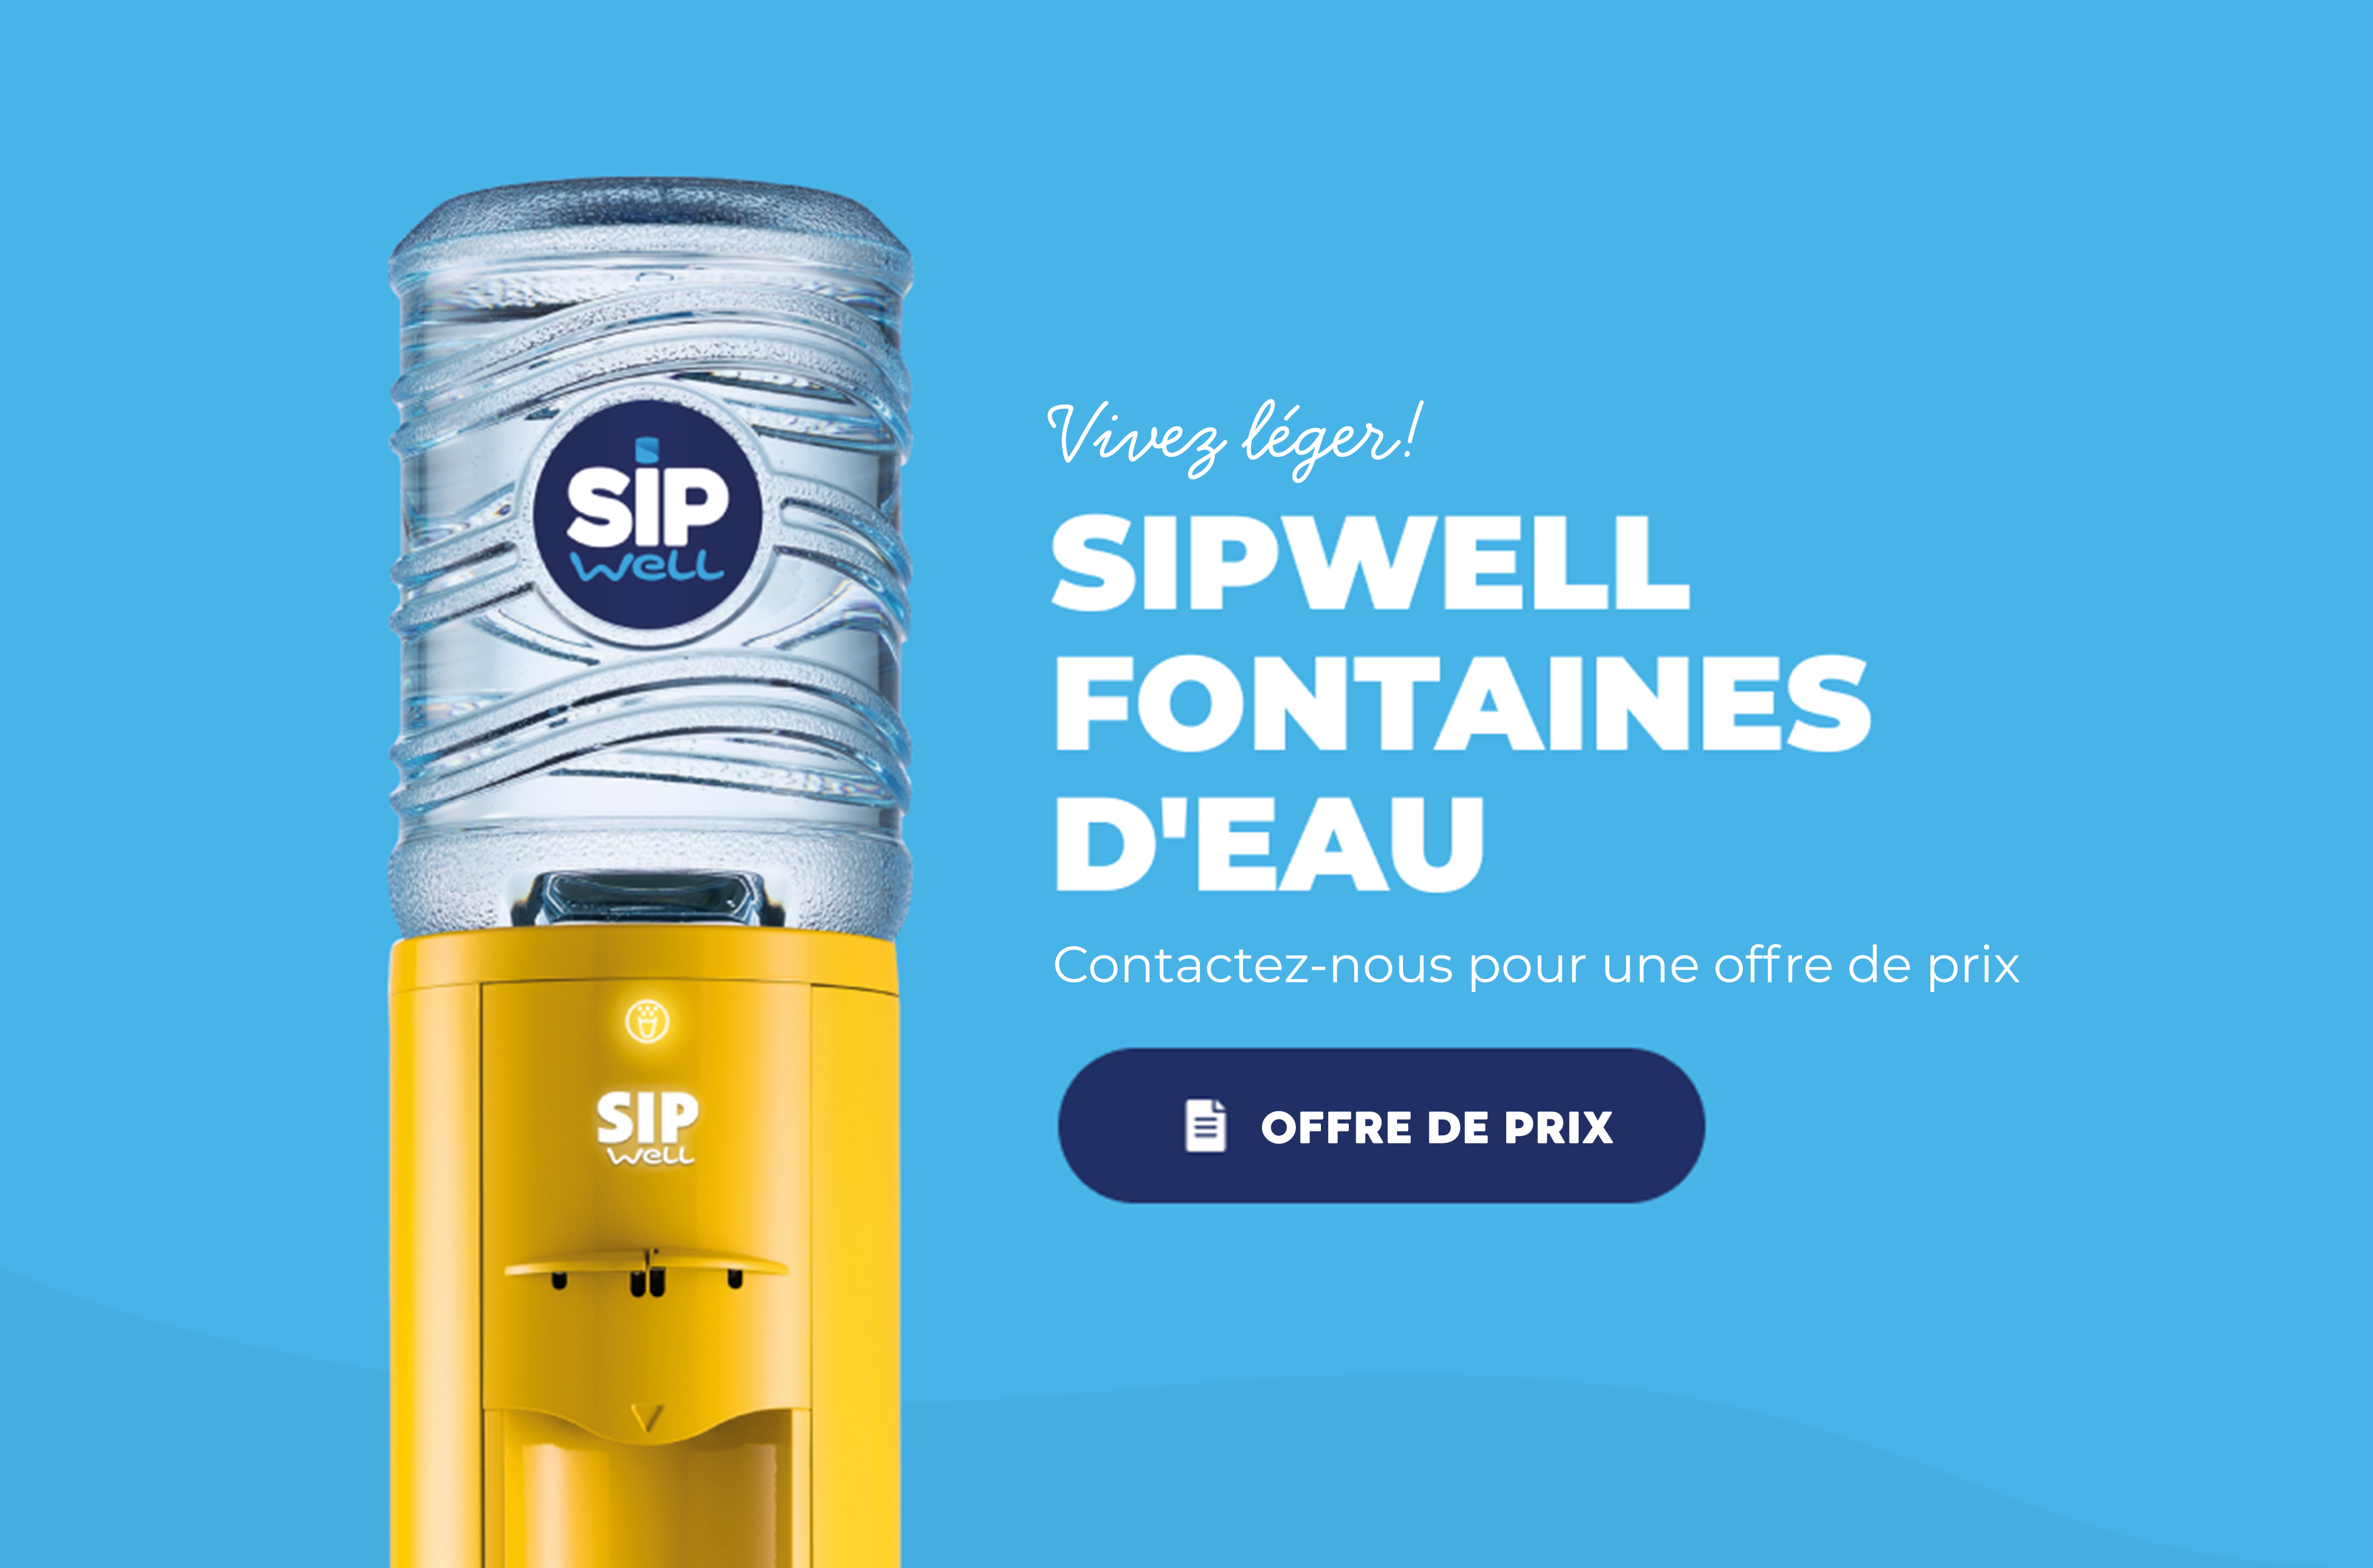 Fontaines d'eau SipWell